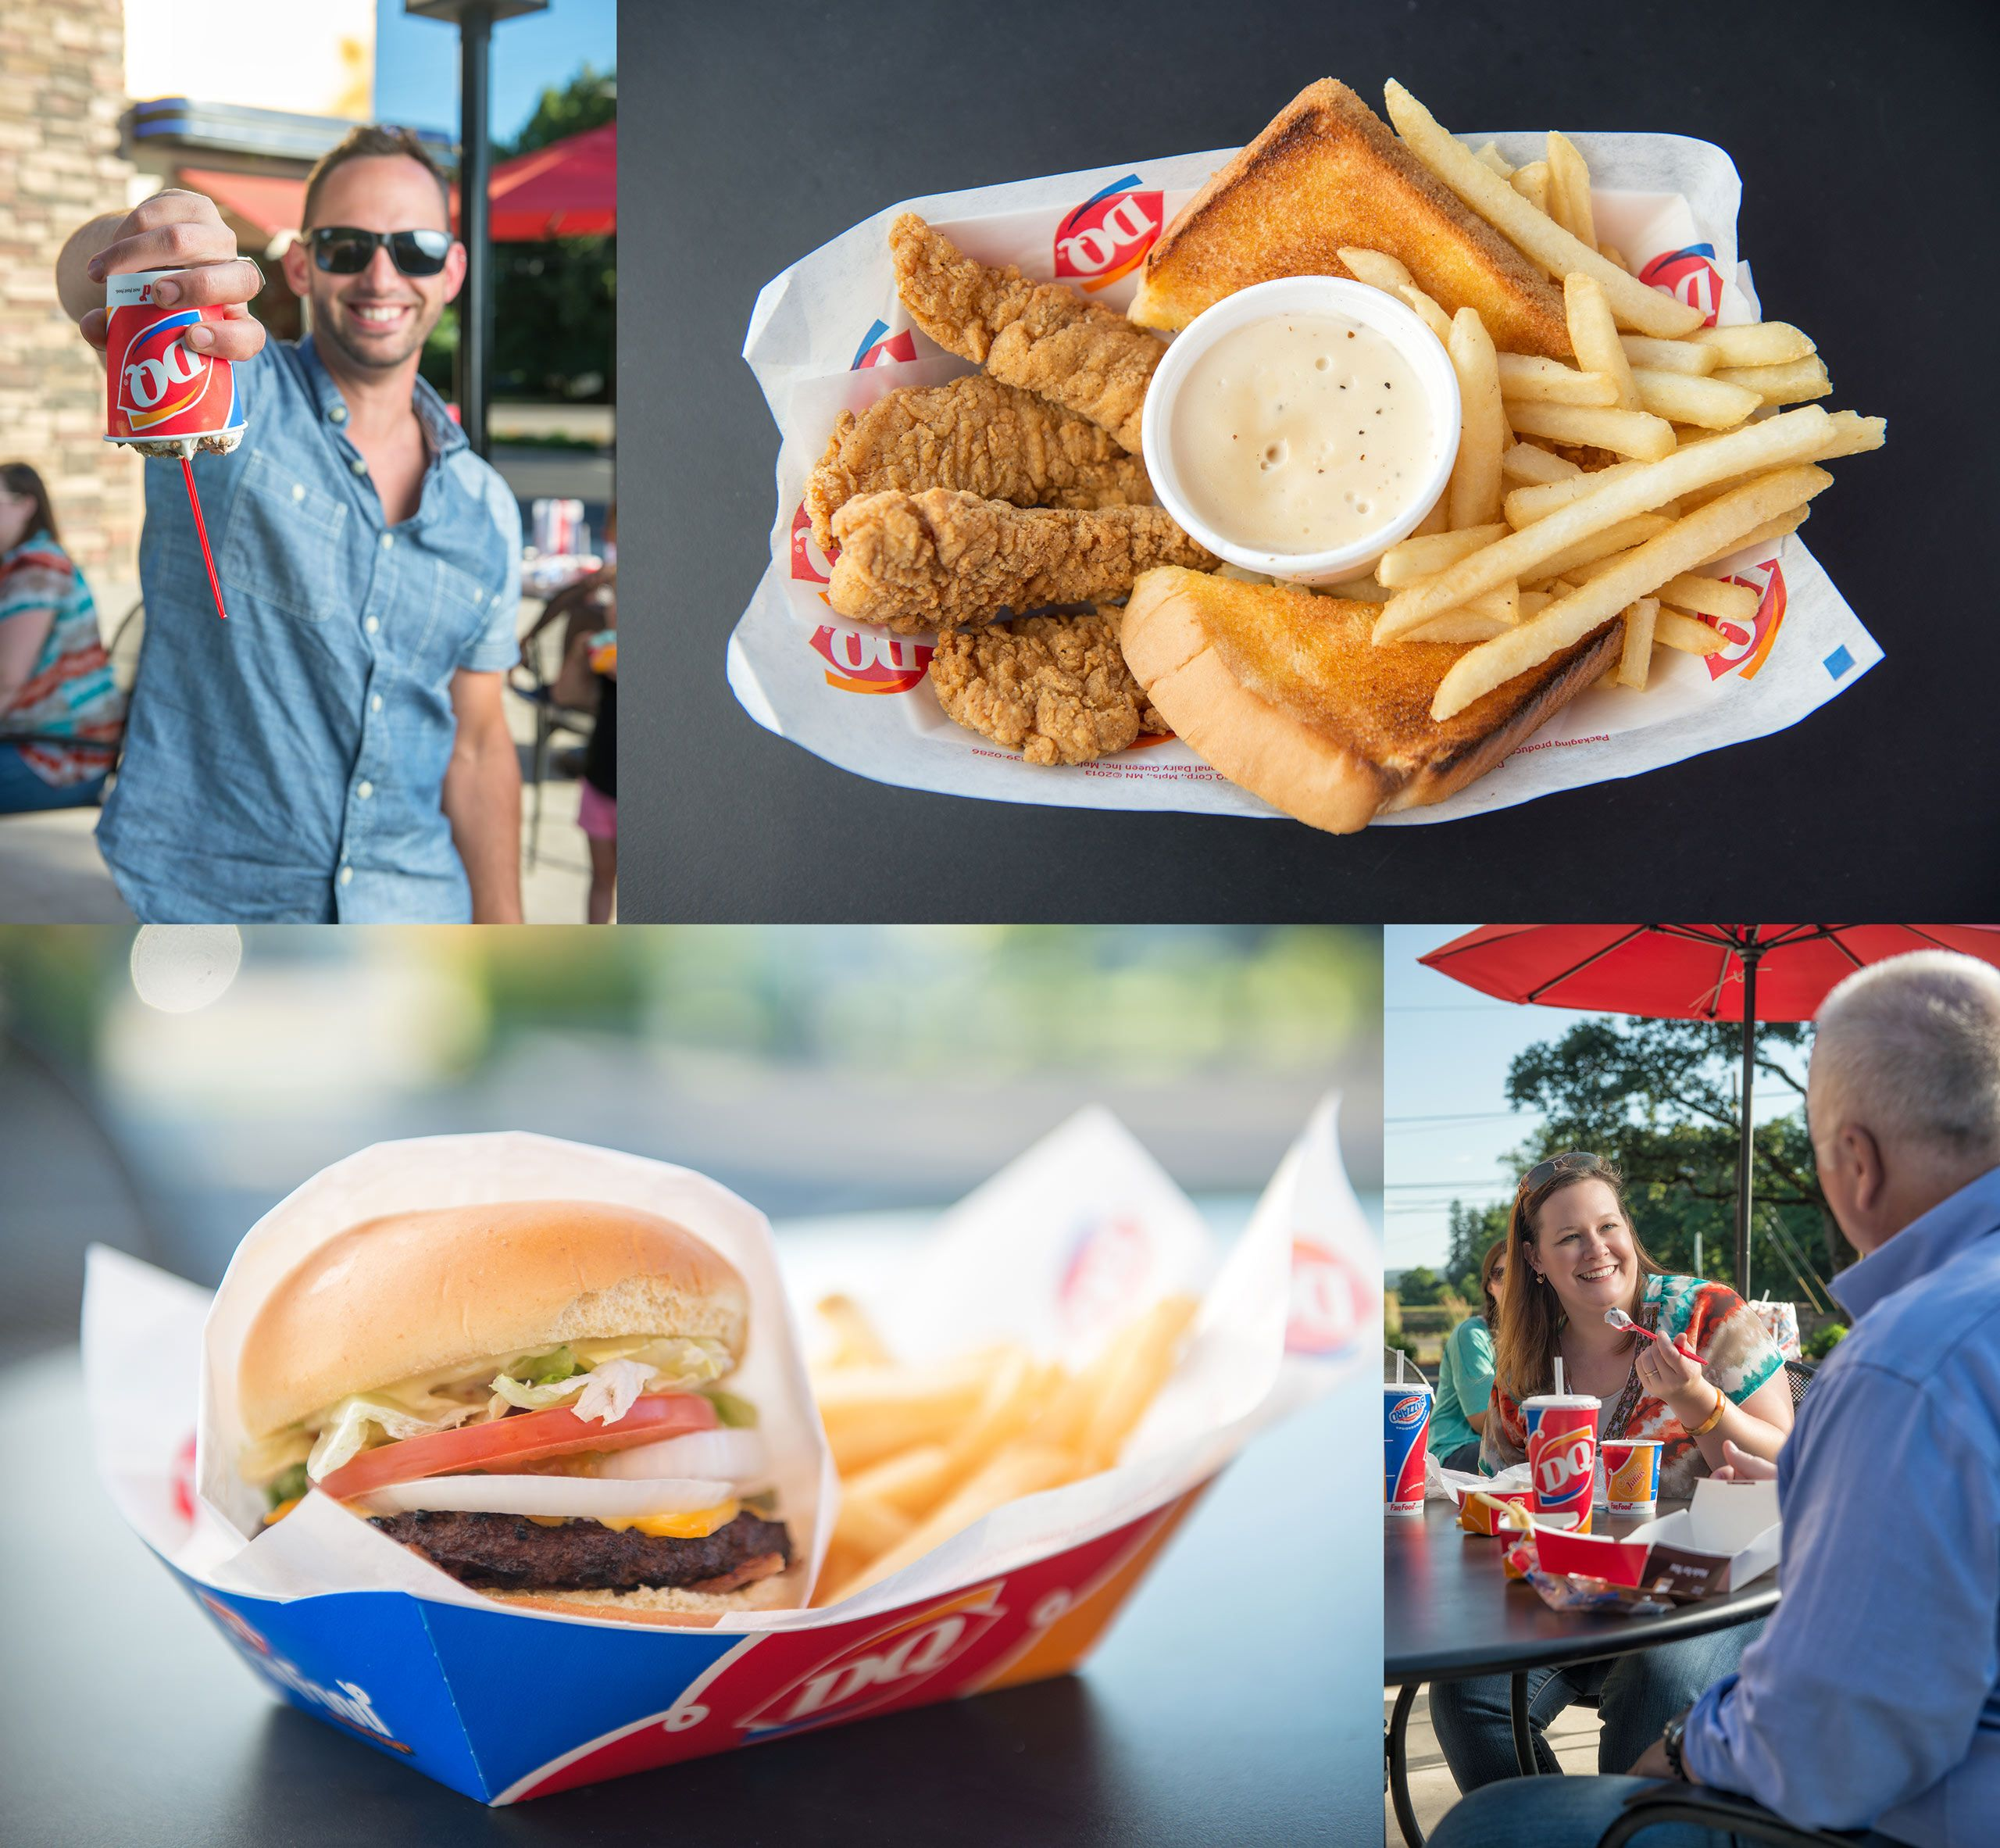 Imagery shot for the Creswell OR Dairy Queen